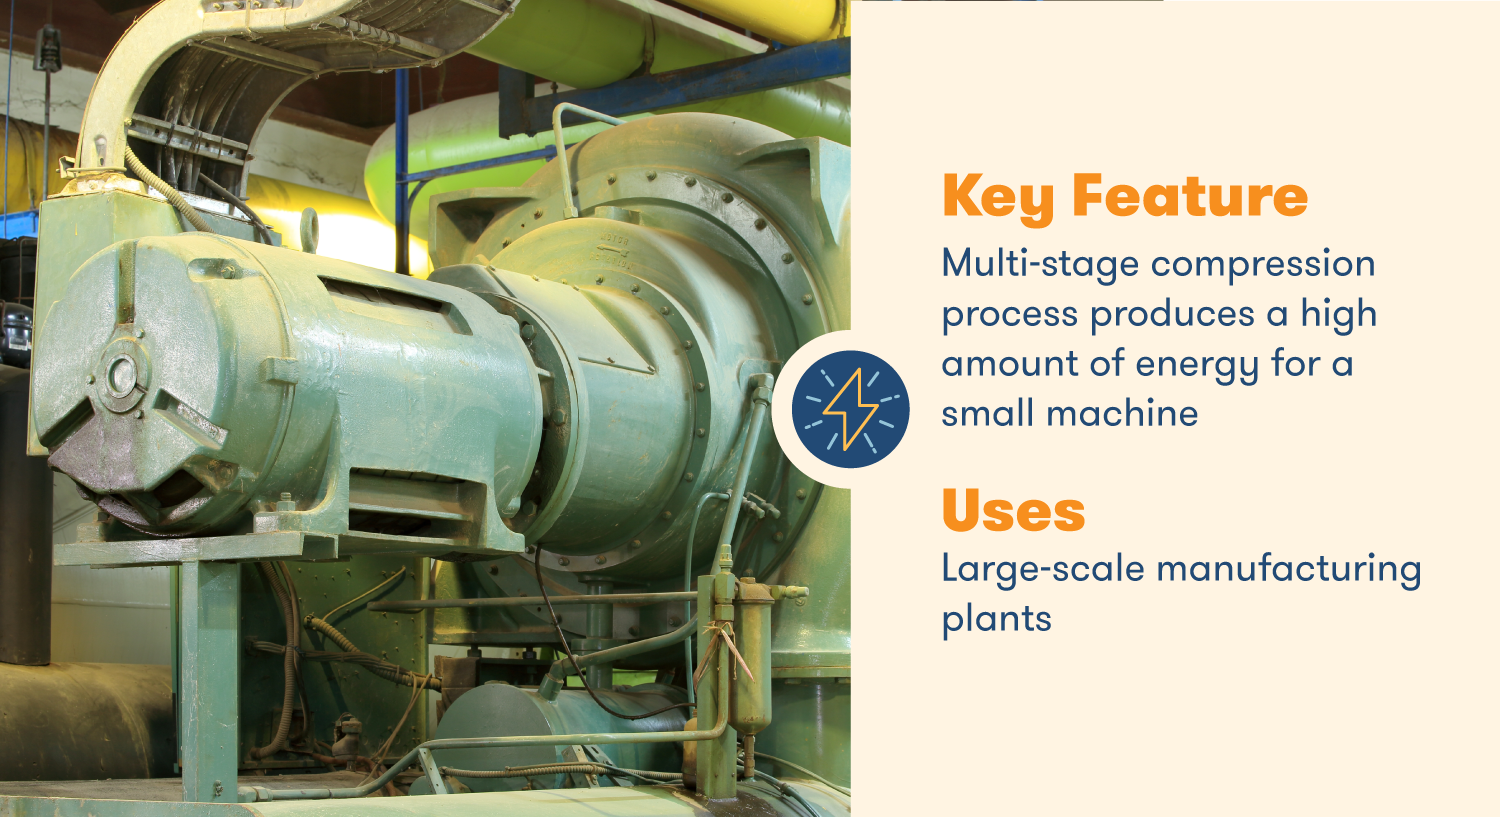 Centrifugal Compressors produce a high amount of energy for large-scale manufacturing plants.